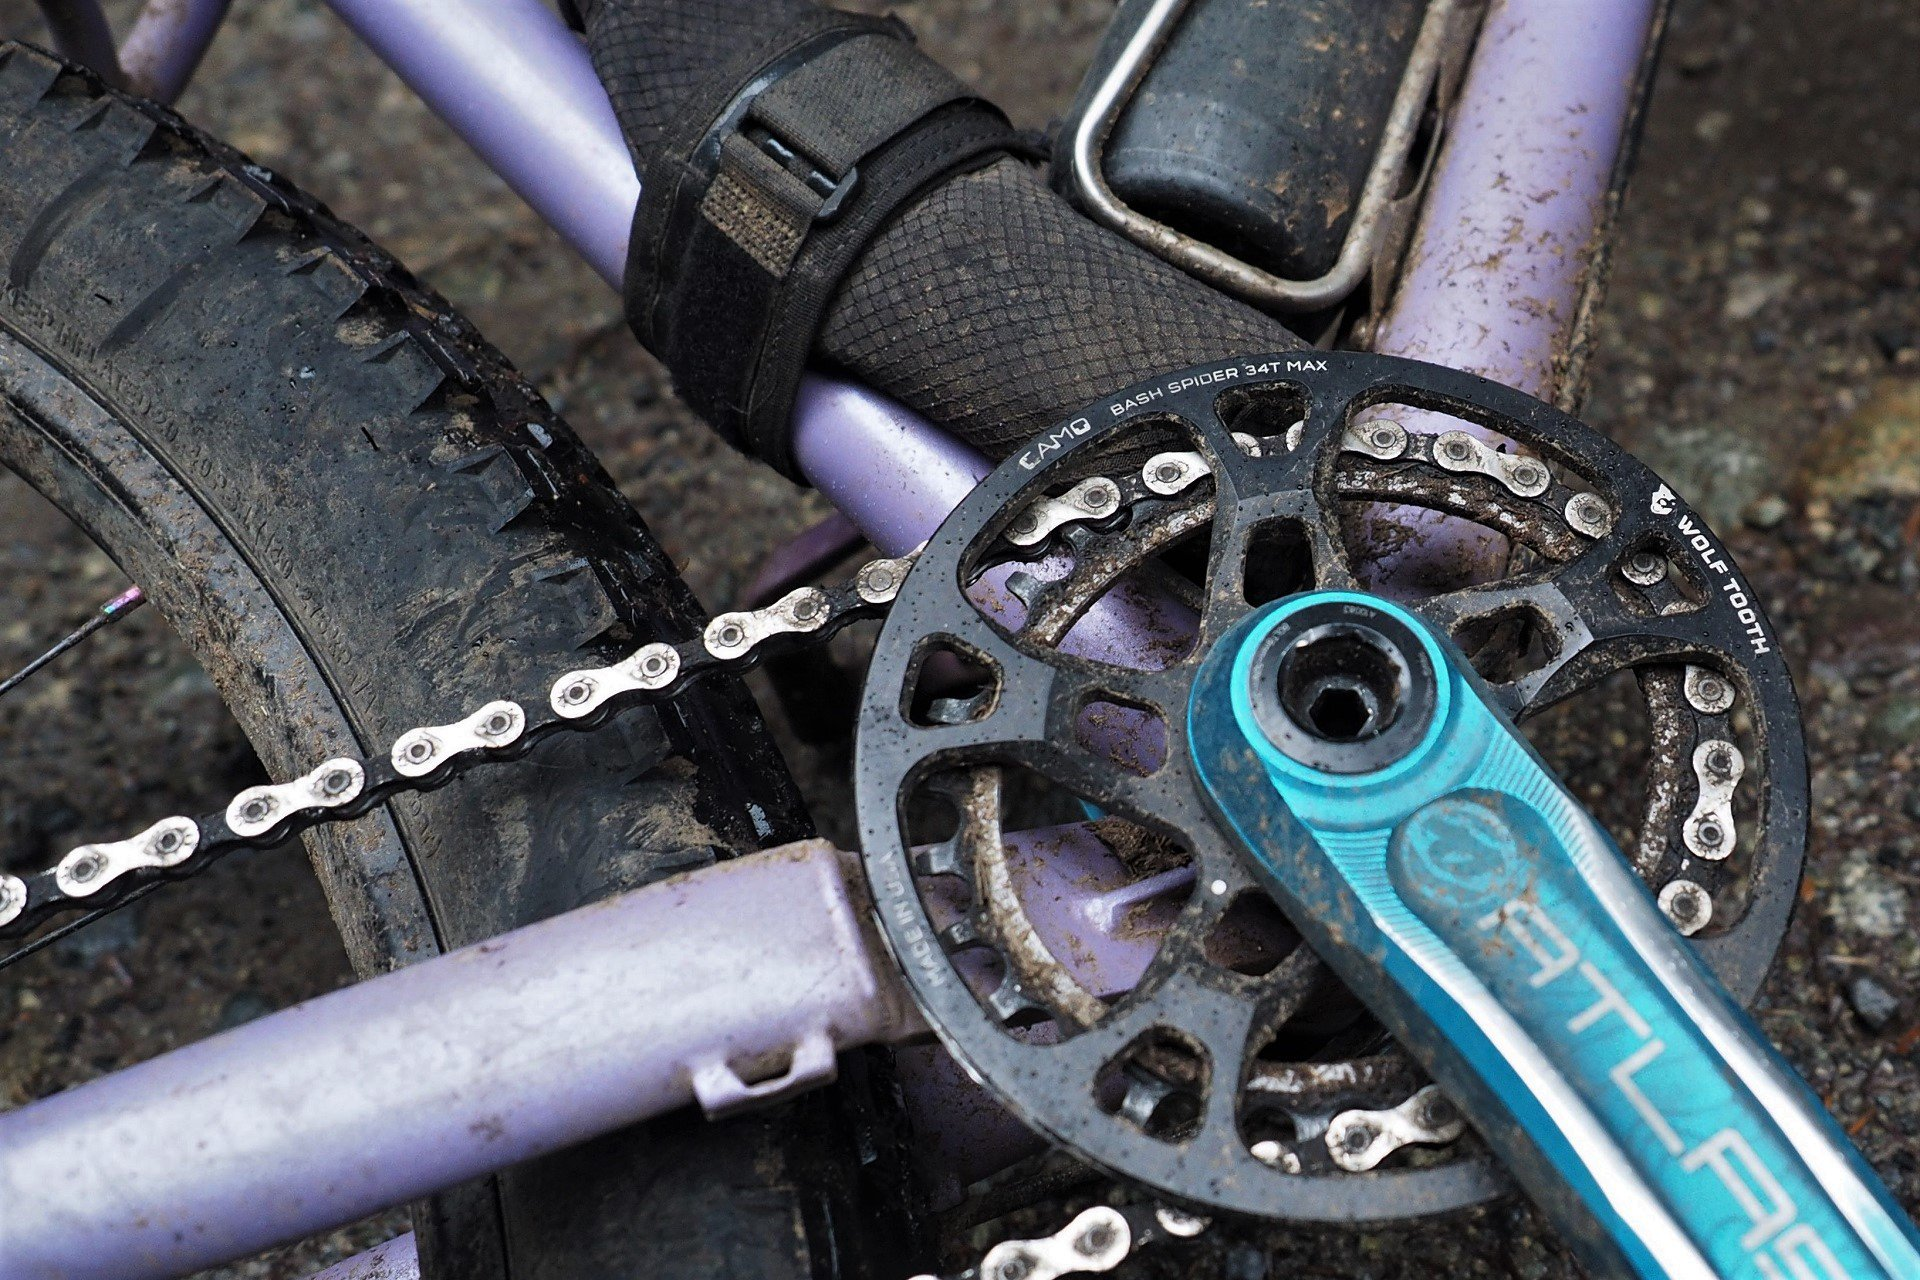 Wolf Tooth Components Bash Guard for 104 BCD Cranks Fits 32t 34t Chainrings for sale online